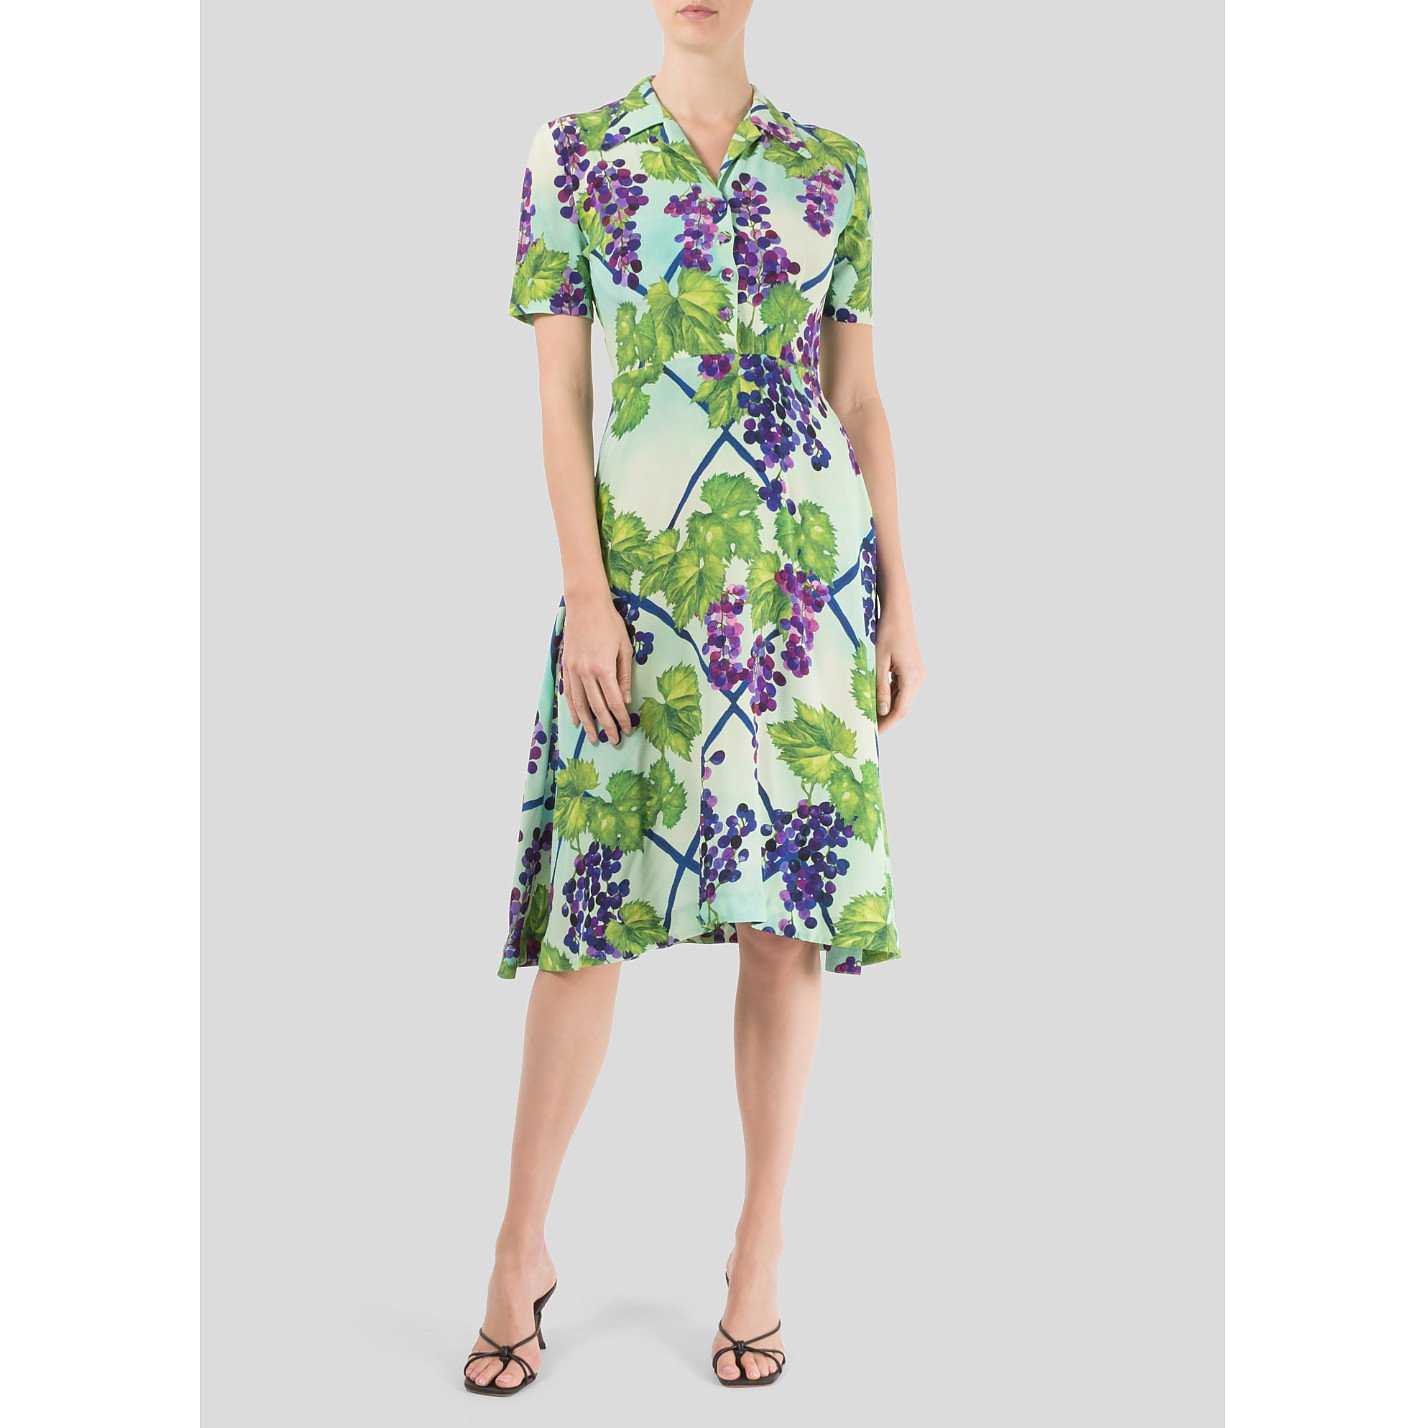 Isolda Grape Print Dress